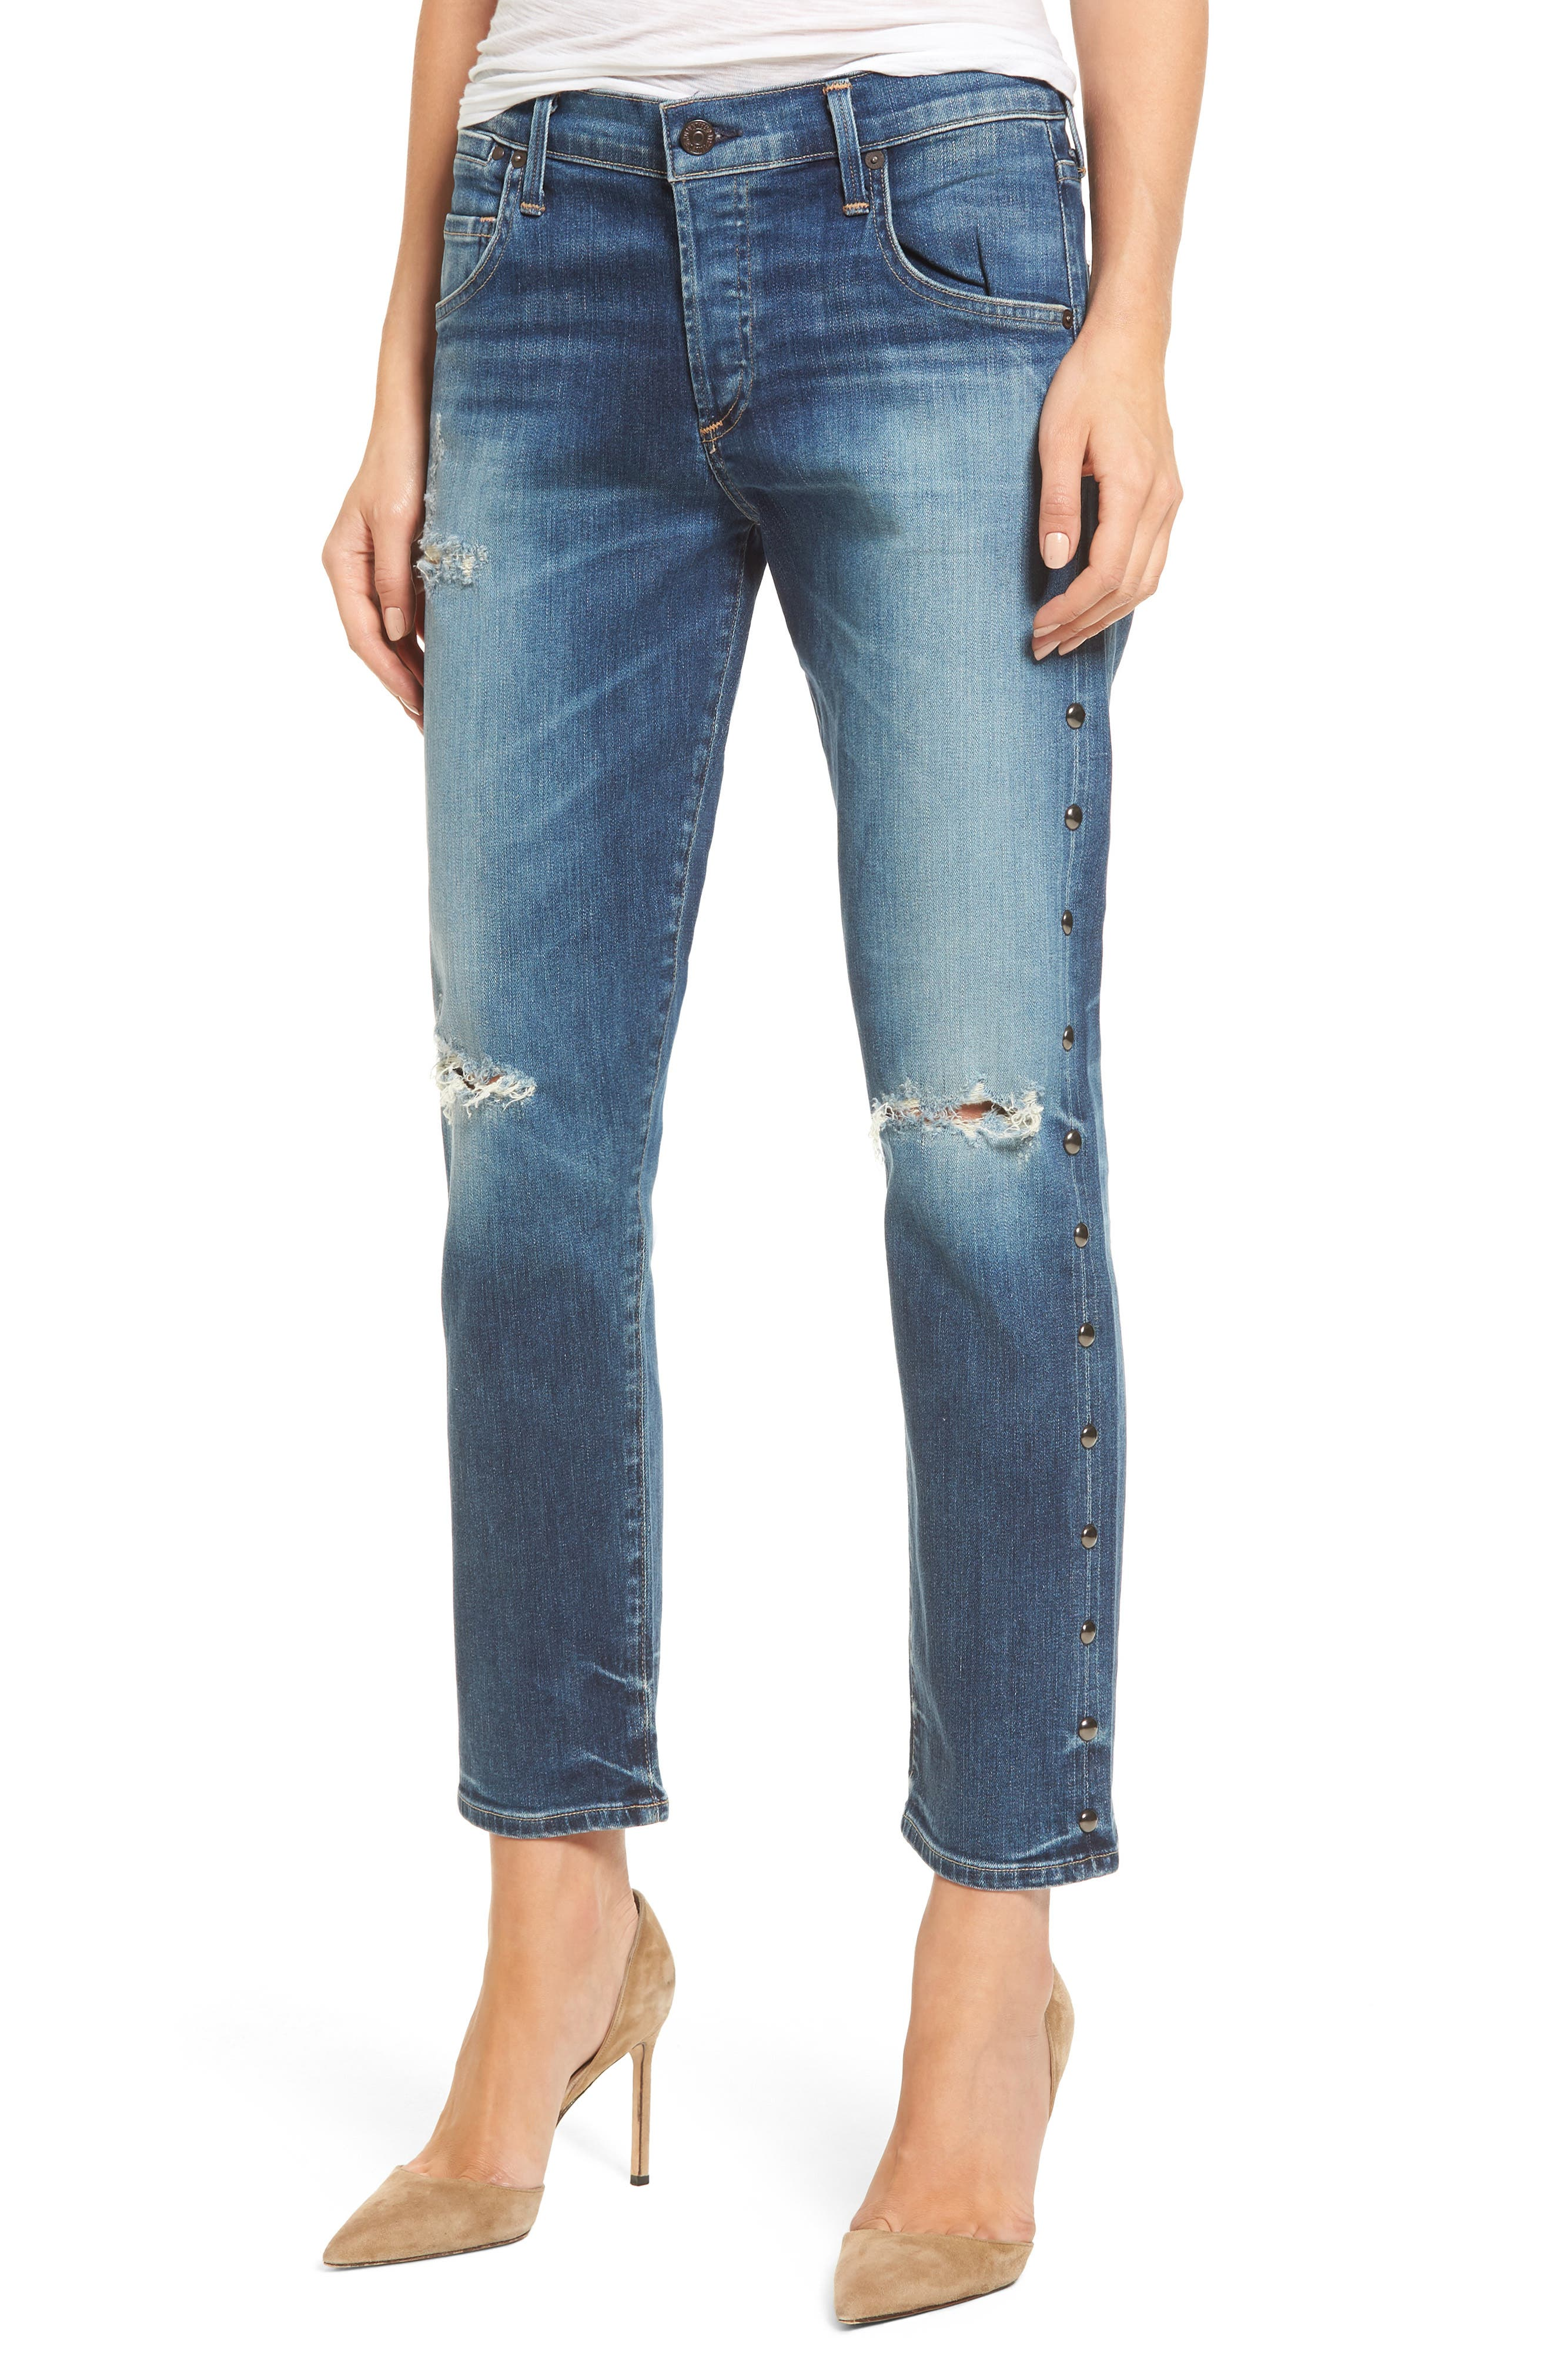 Alternate Image 1 Selected - Citizens of Humanity Emerson Slim Boyfriend Jeans (Studded Stetson)